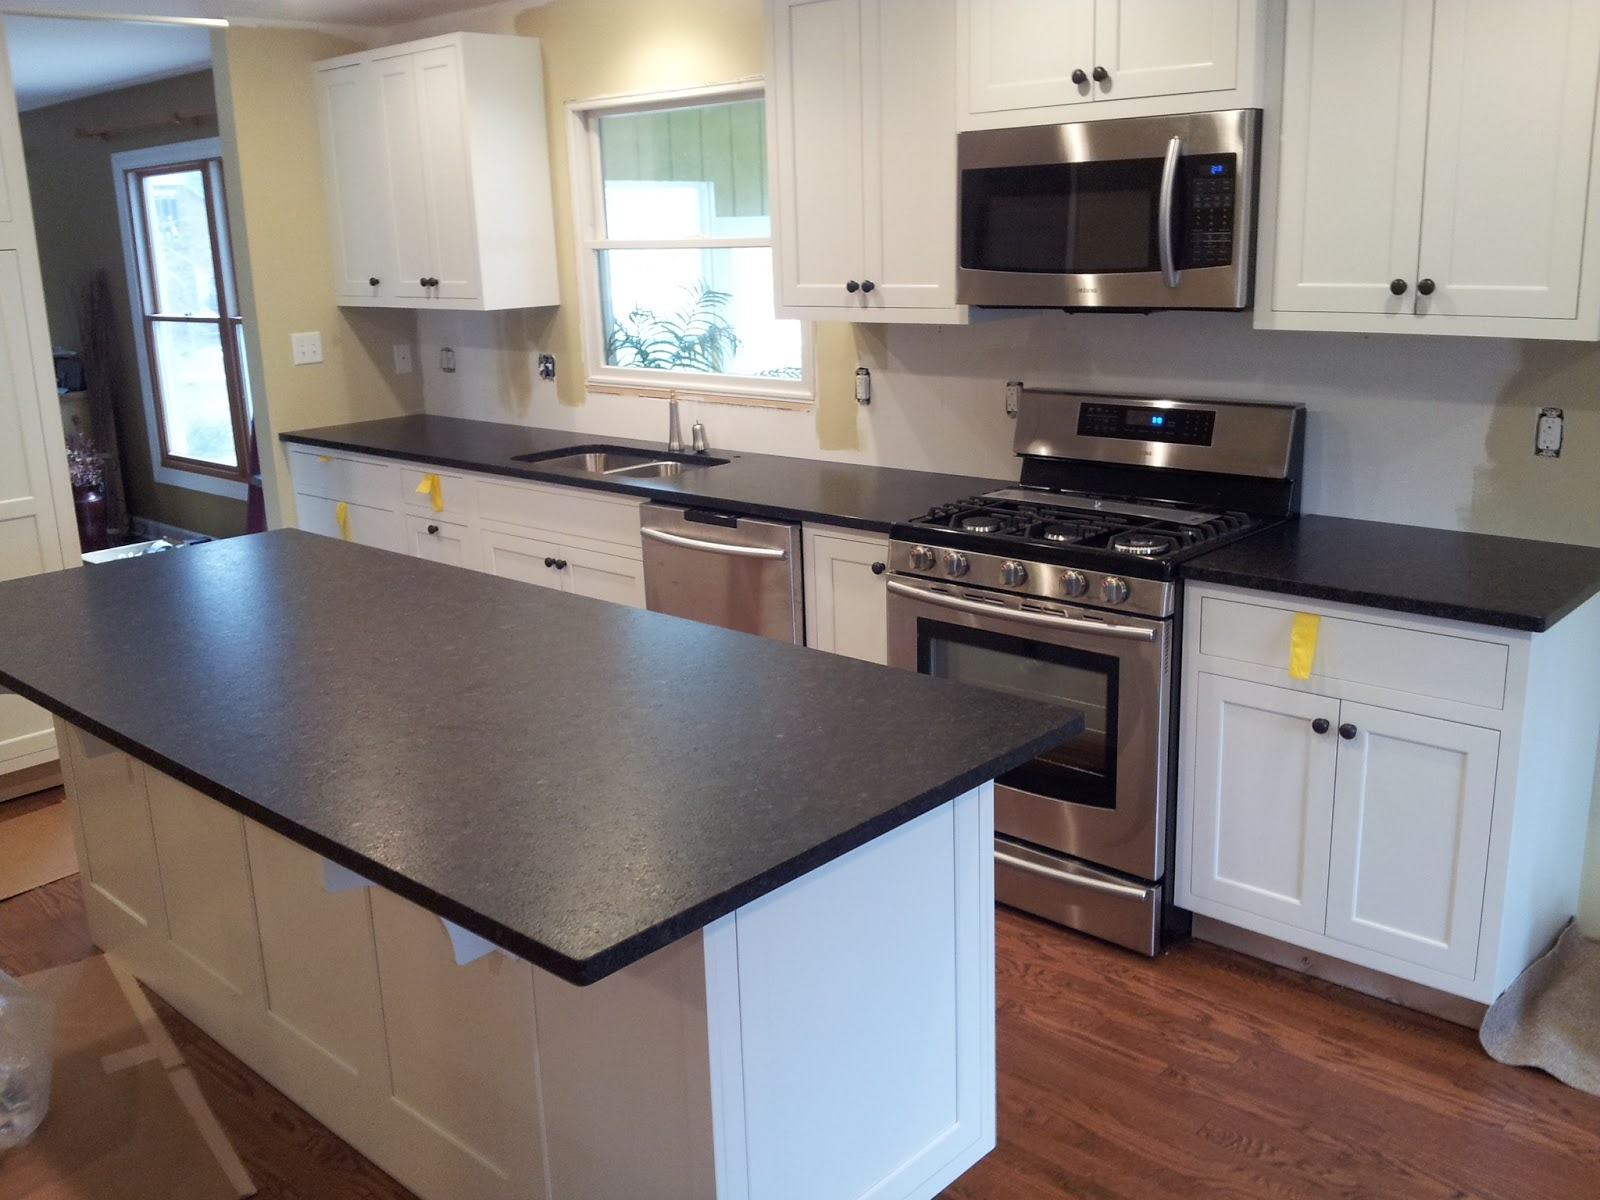 Art Granite Countertops Inc.: Countertops Granite $30 Sf Installed With  Minimum 46sf Also Free Sink, 3 Edges , Free Attachment Of Sink U0026 Dishwasher  ...